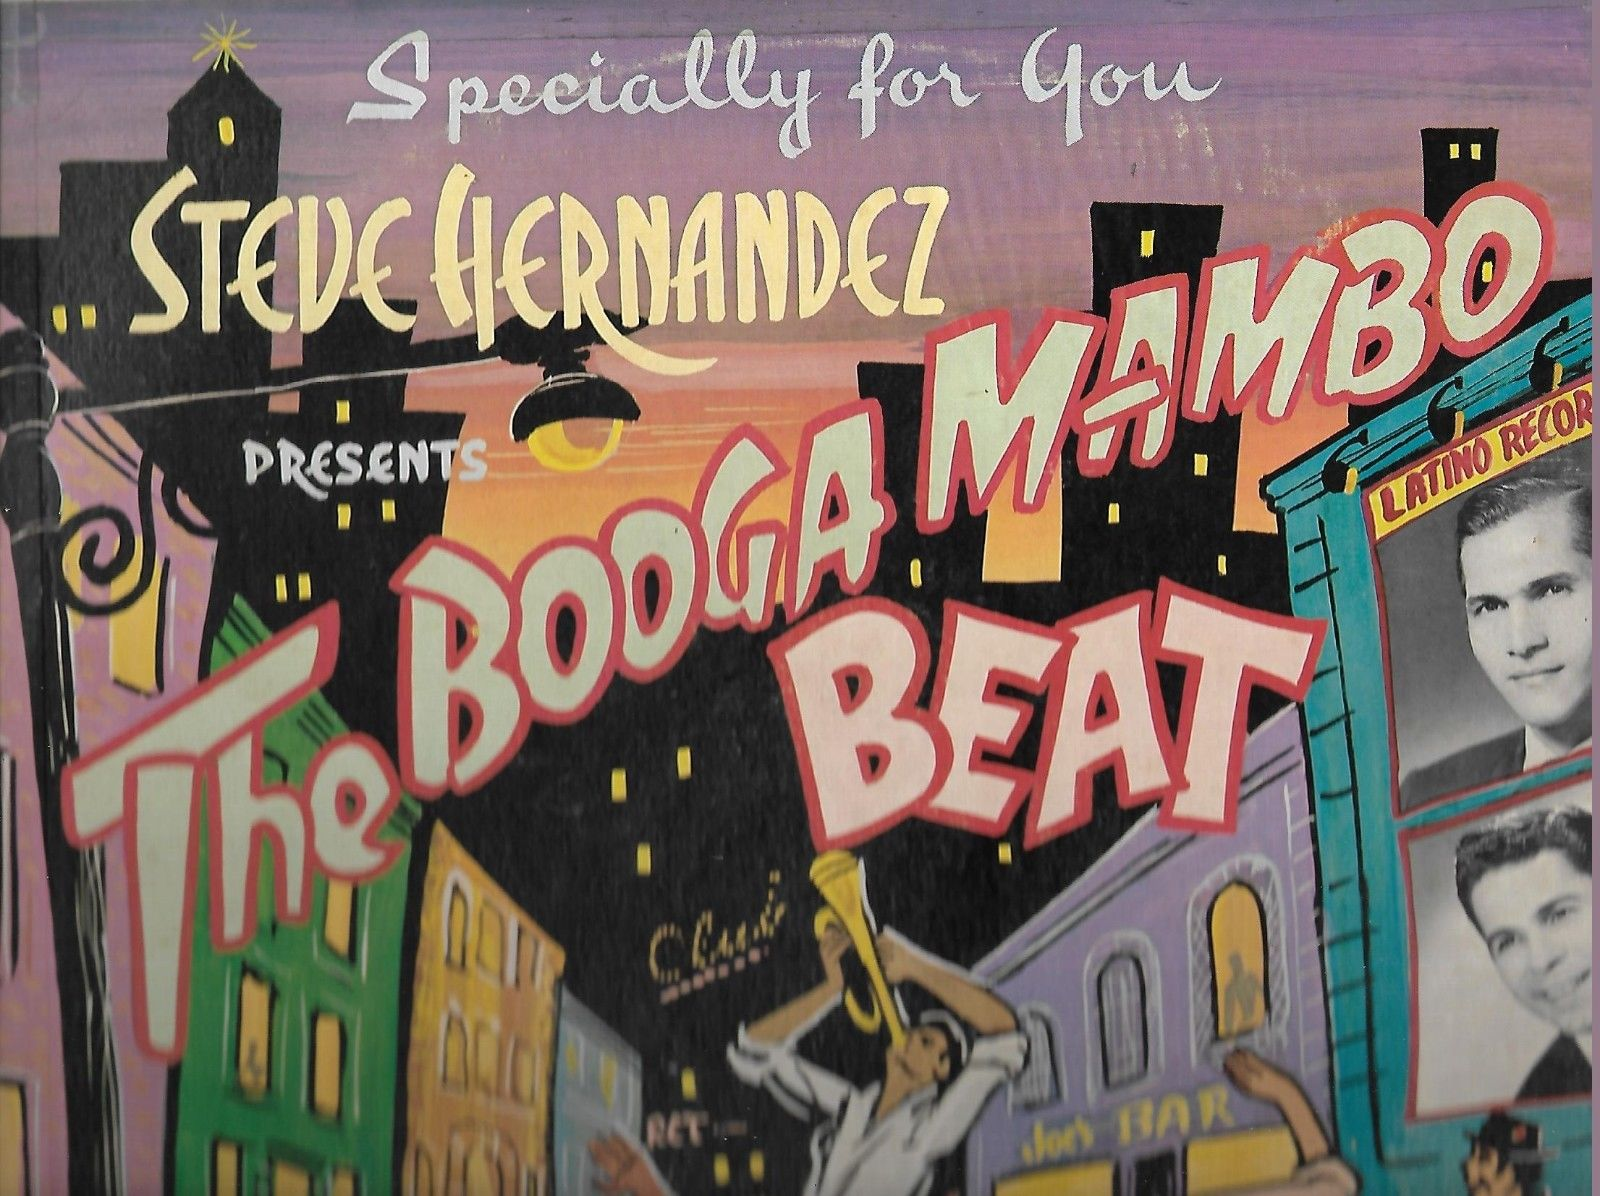 THE BOOGA MAMBO BEAT - STEVE HERNANDEZ PRESENTS SPECIALLY FOR YOU